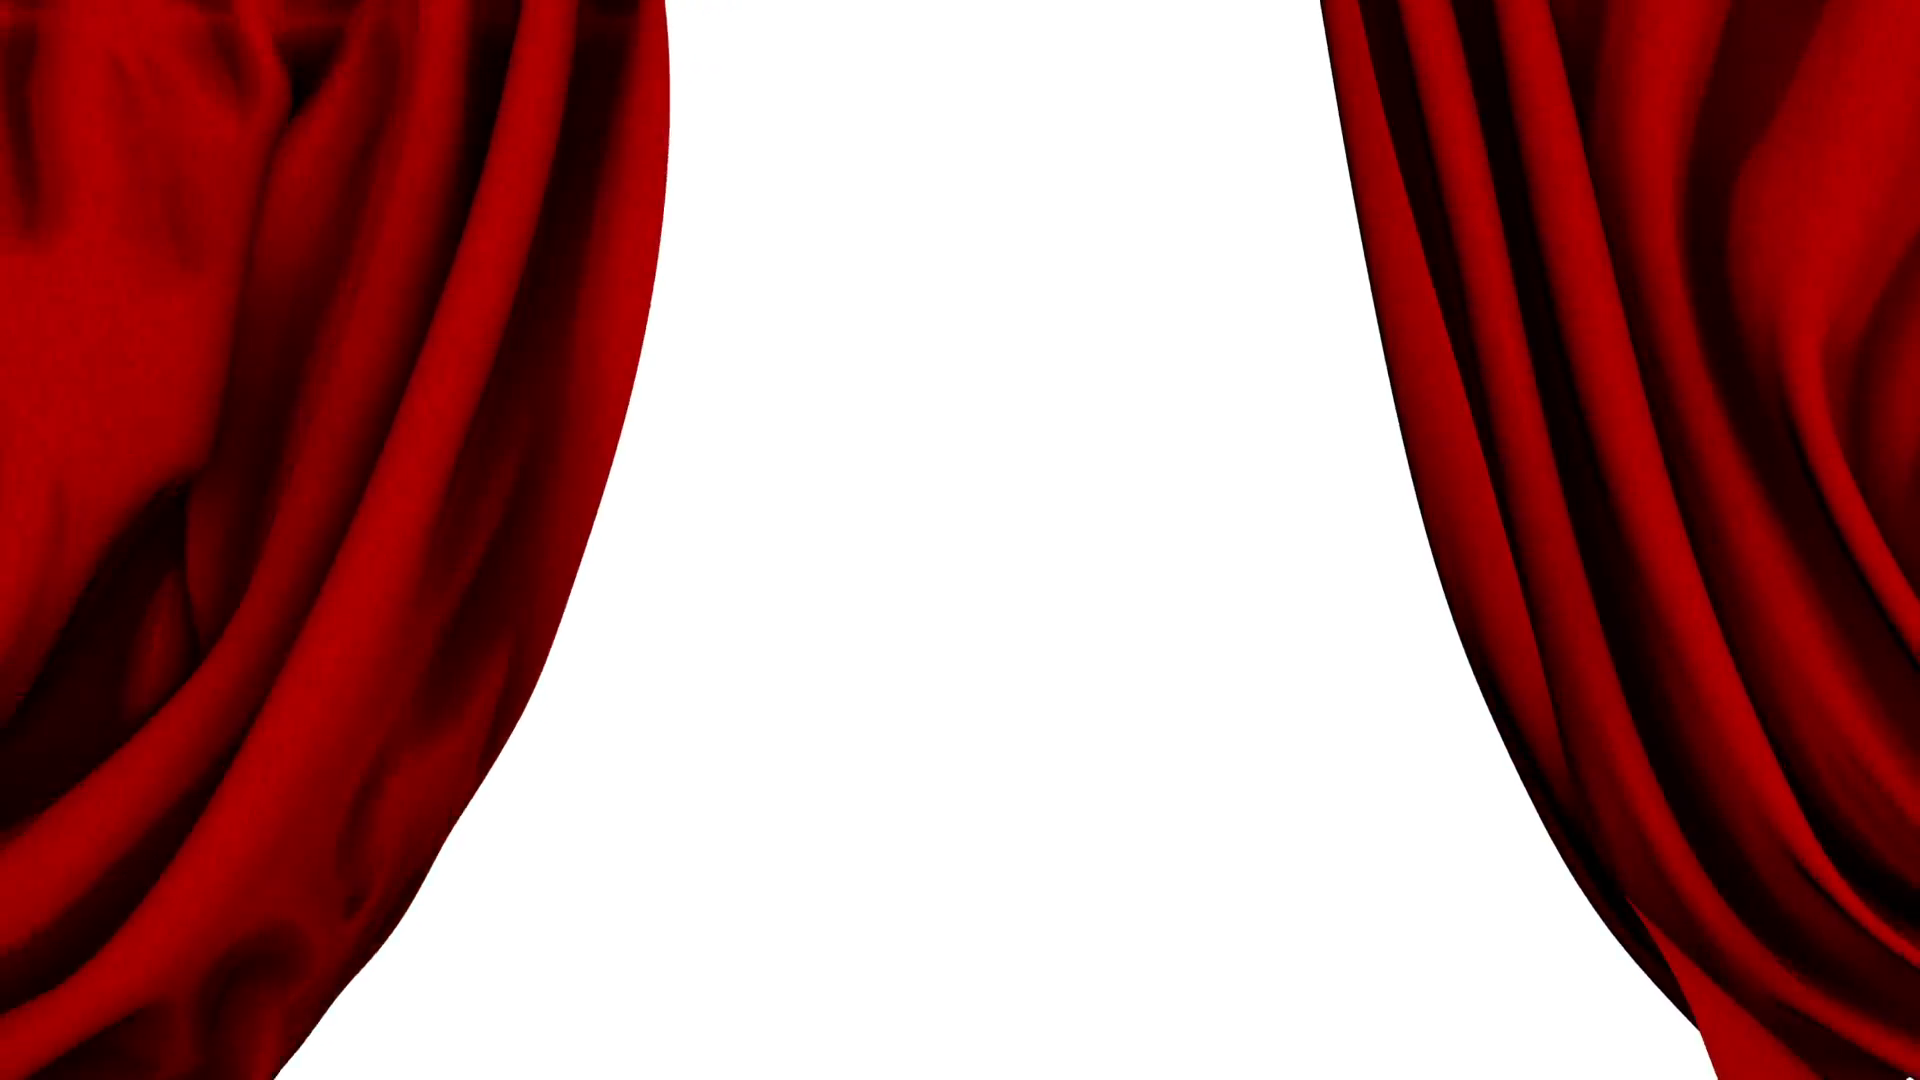 Red Show Curtains Close & Open Quick Transition Motion Background ...